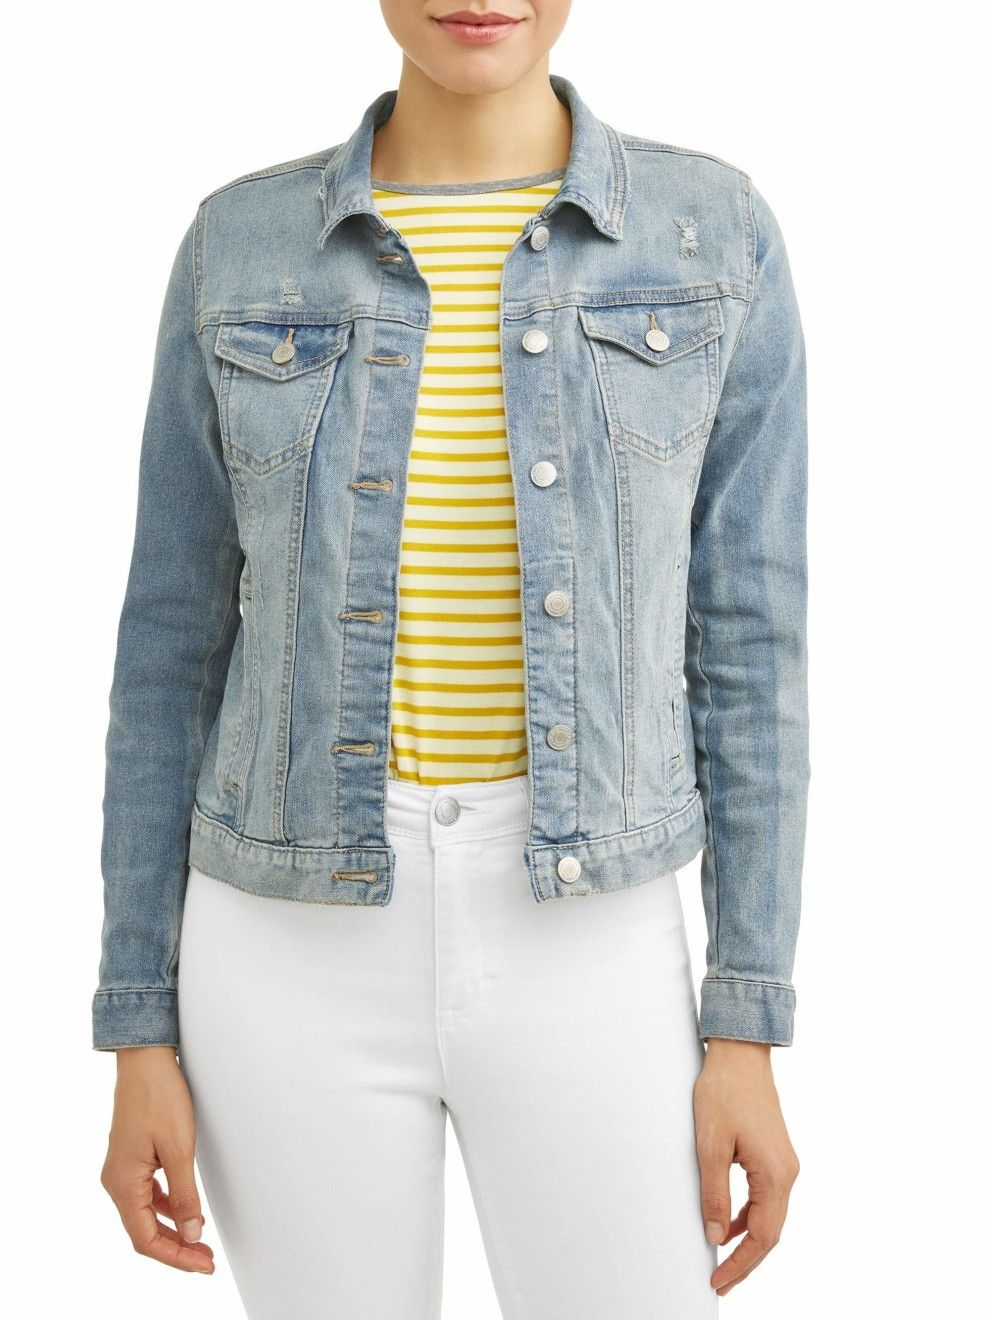 28 Pieces From Walmart That You Ll Probably Want To Layer With Everything Denim Jacket Women Denim Women Denim Jacket [ 1320 x 990 Pixel ]